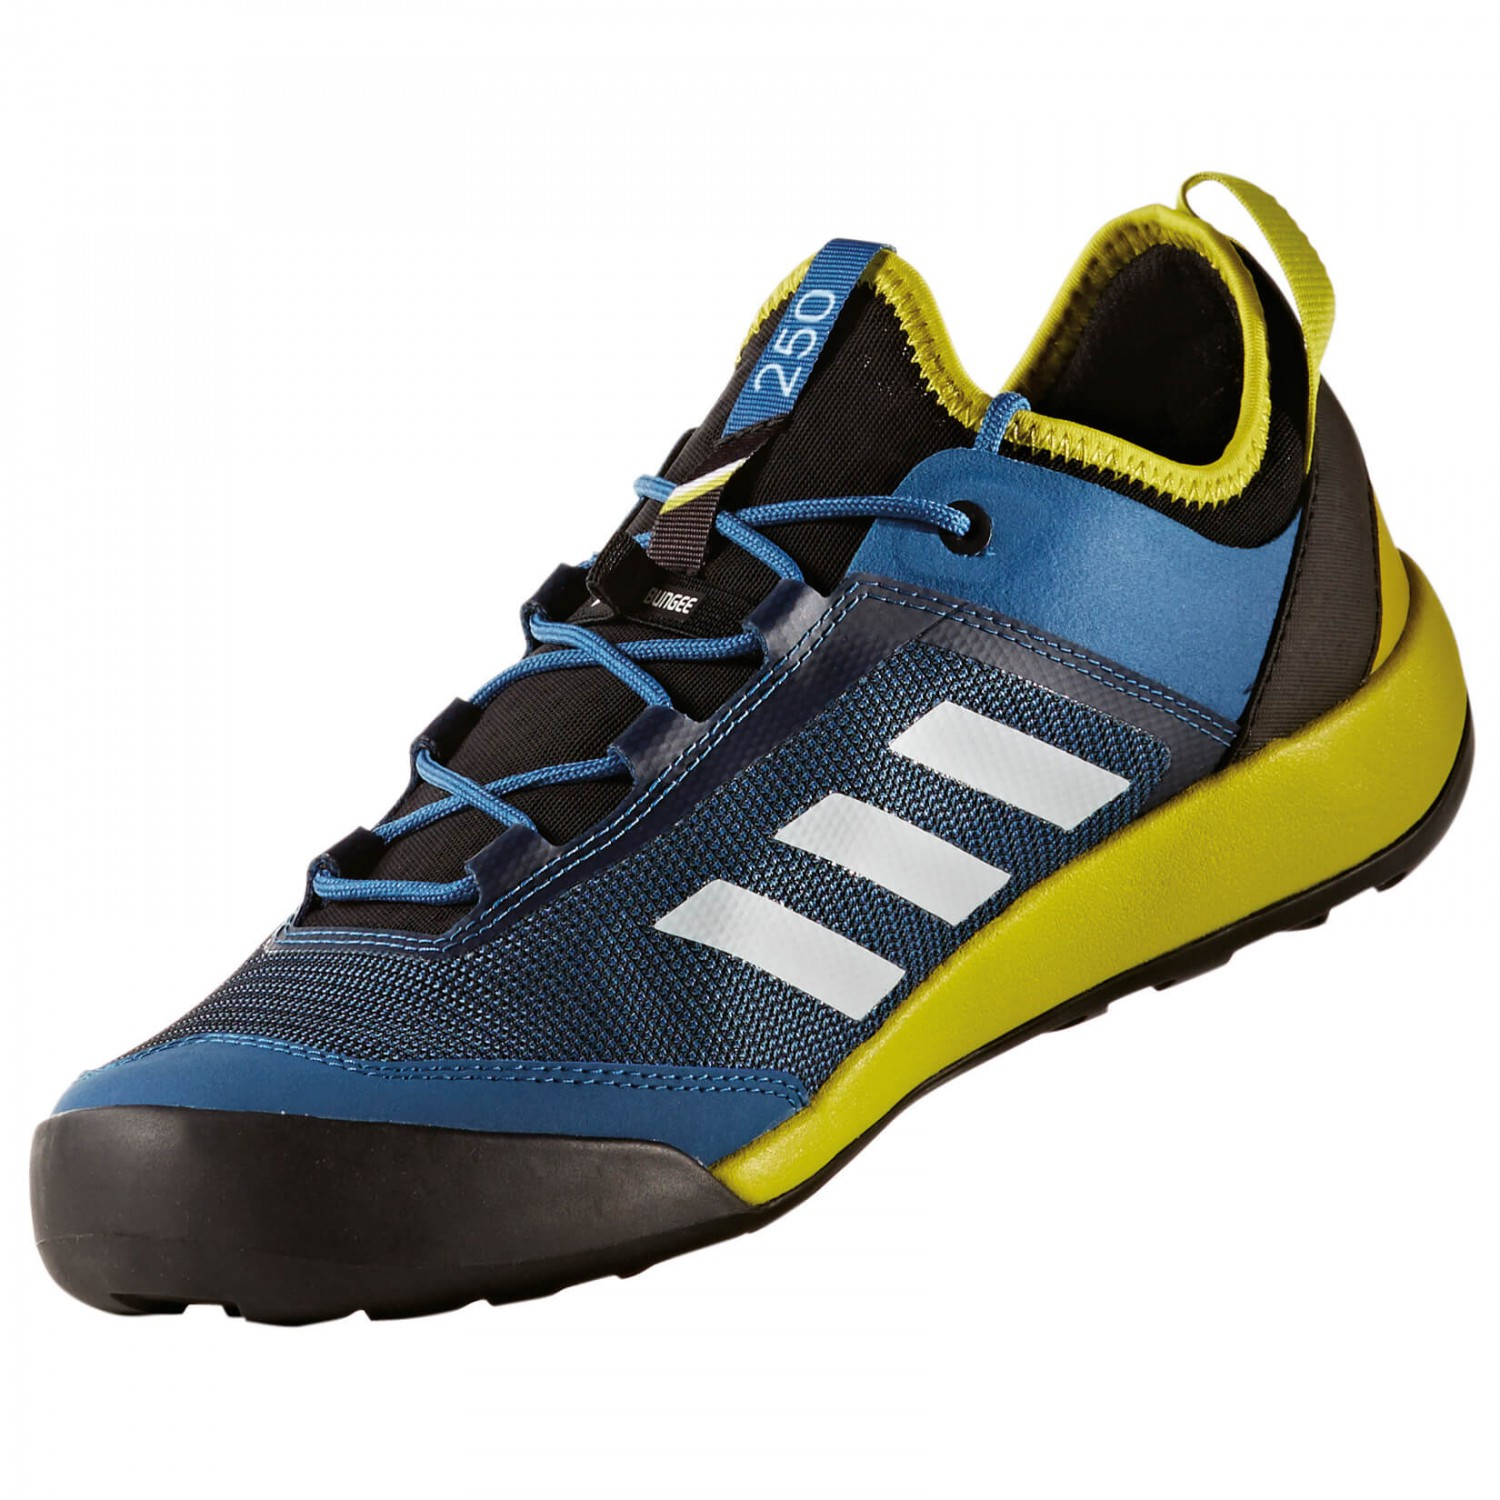 adidas - Terrex Swift Solo - Approachschuhe